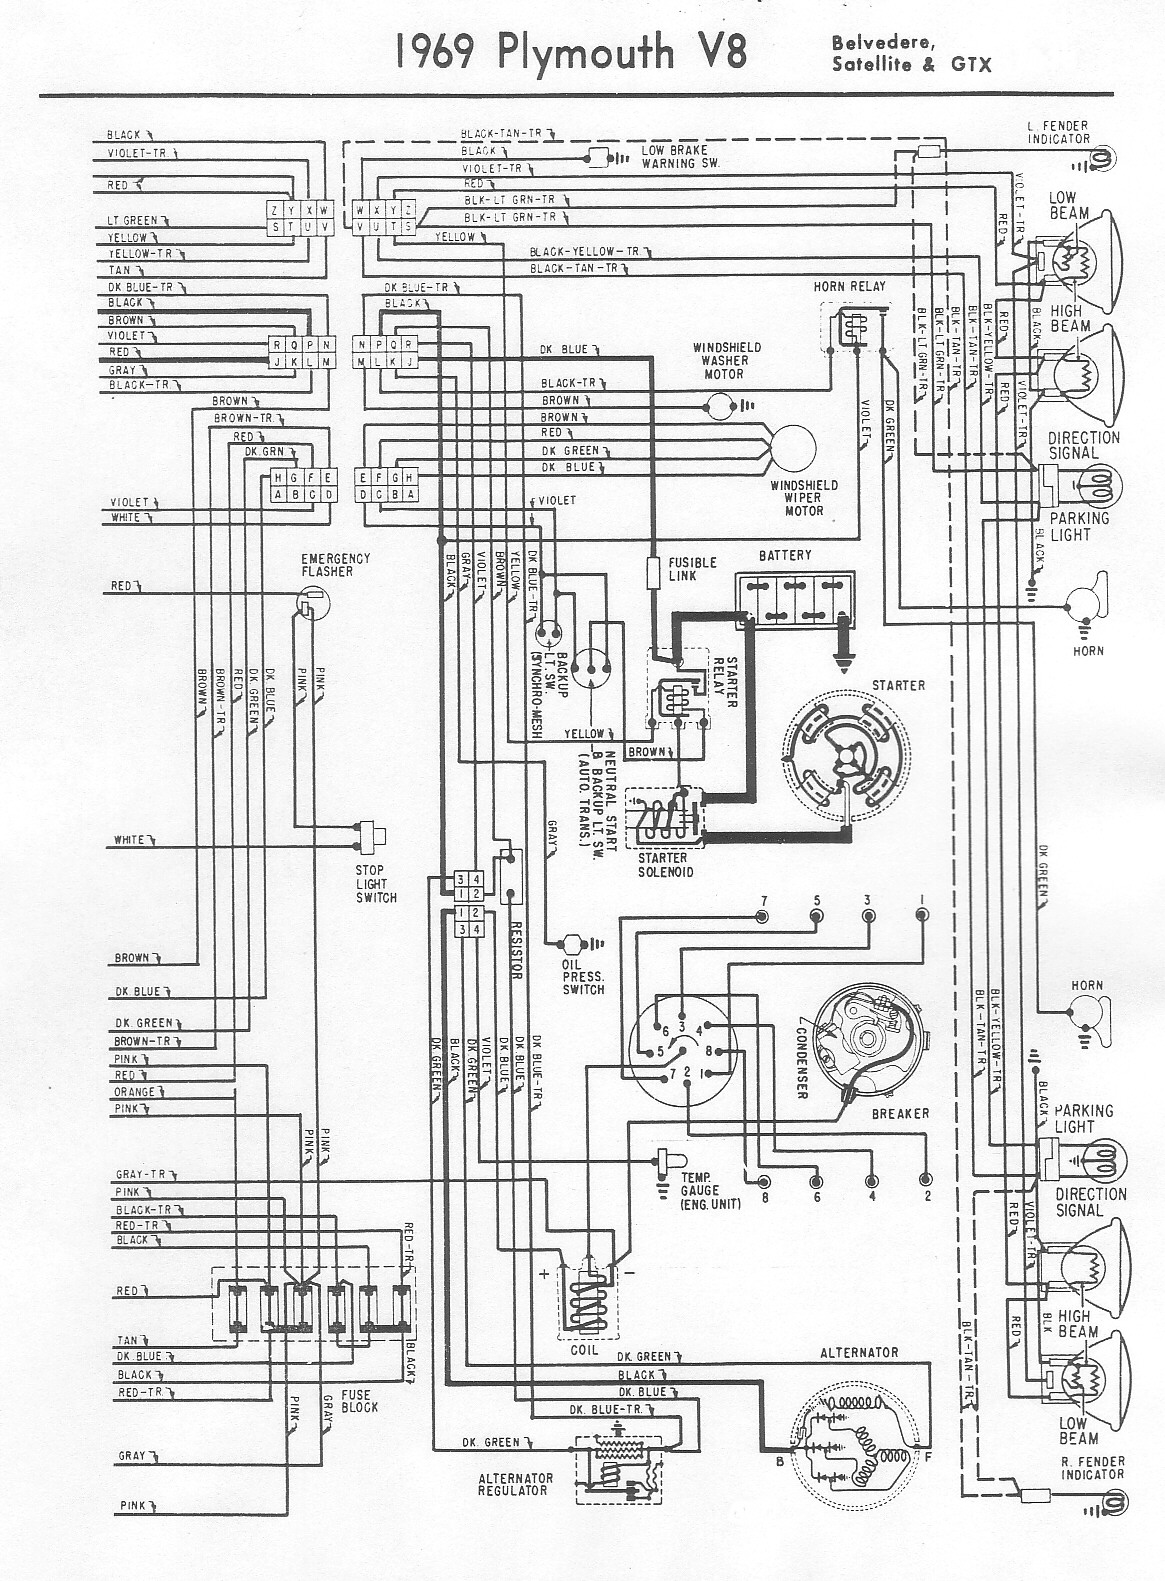 1970 Duster Wiring Diagram Schemes Camaro Schematic Gtx Chevrolet 1968 Plymouth Roadrunner